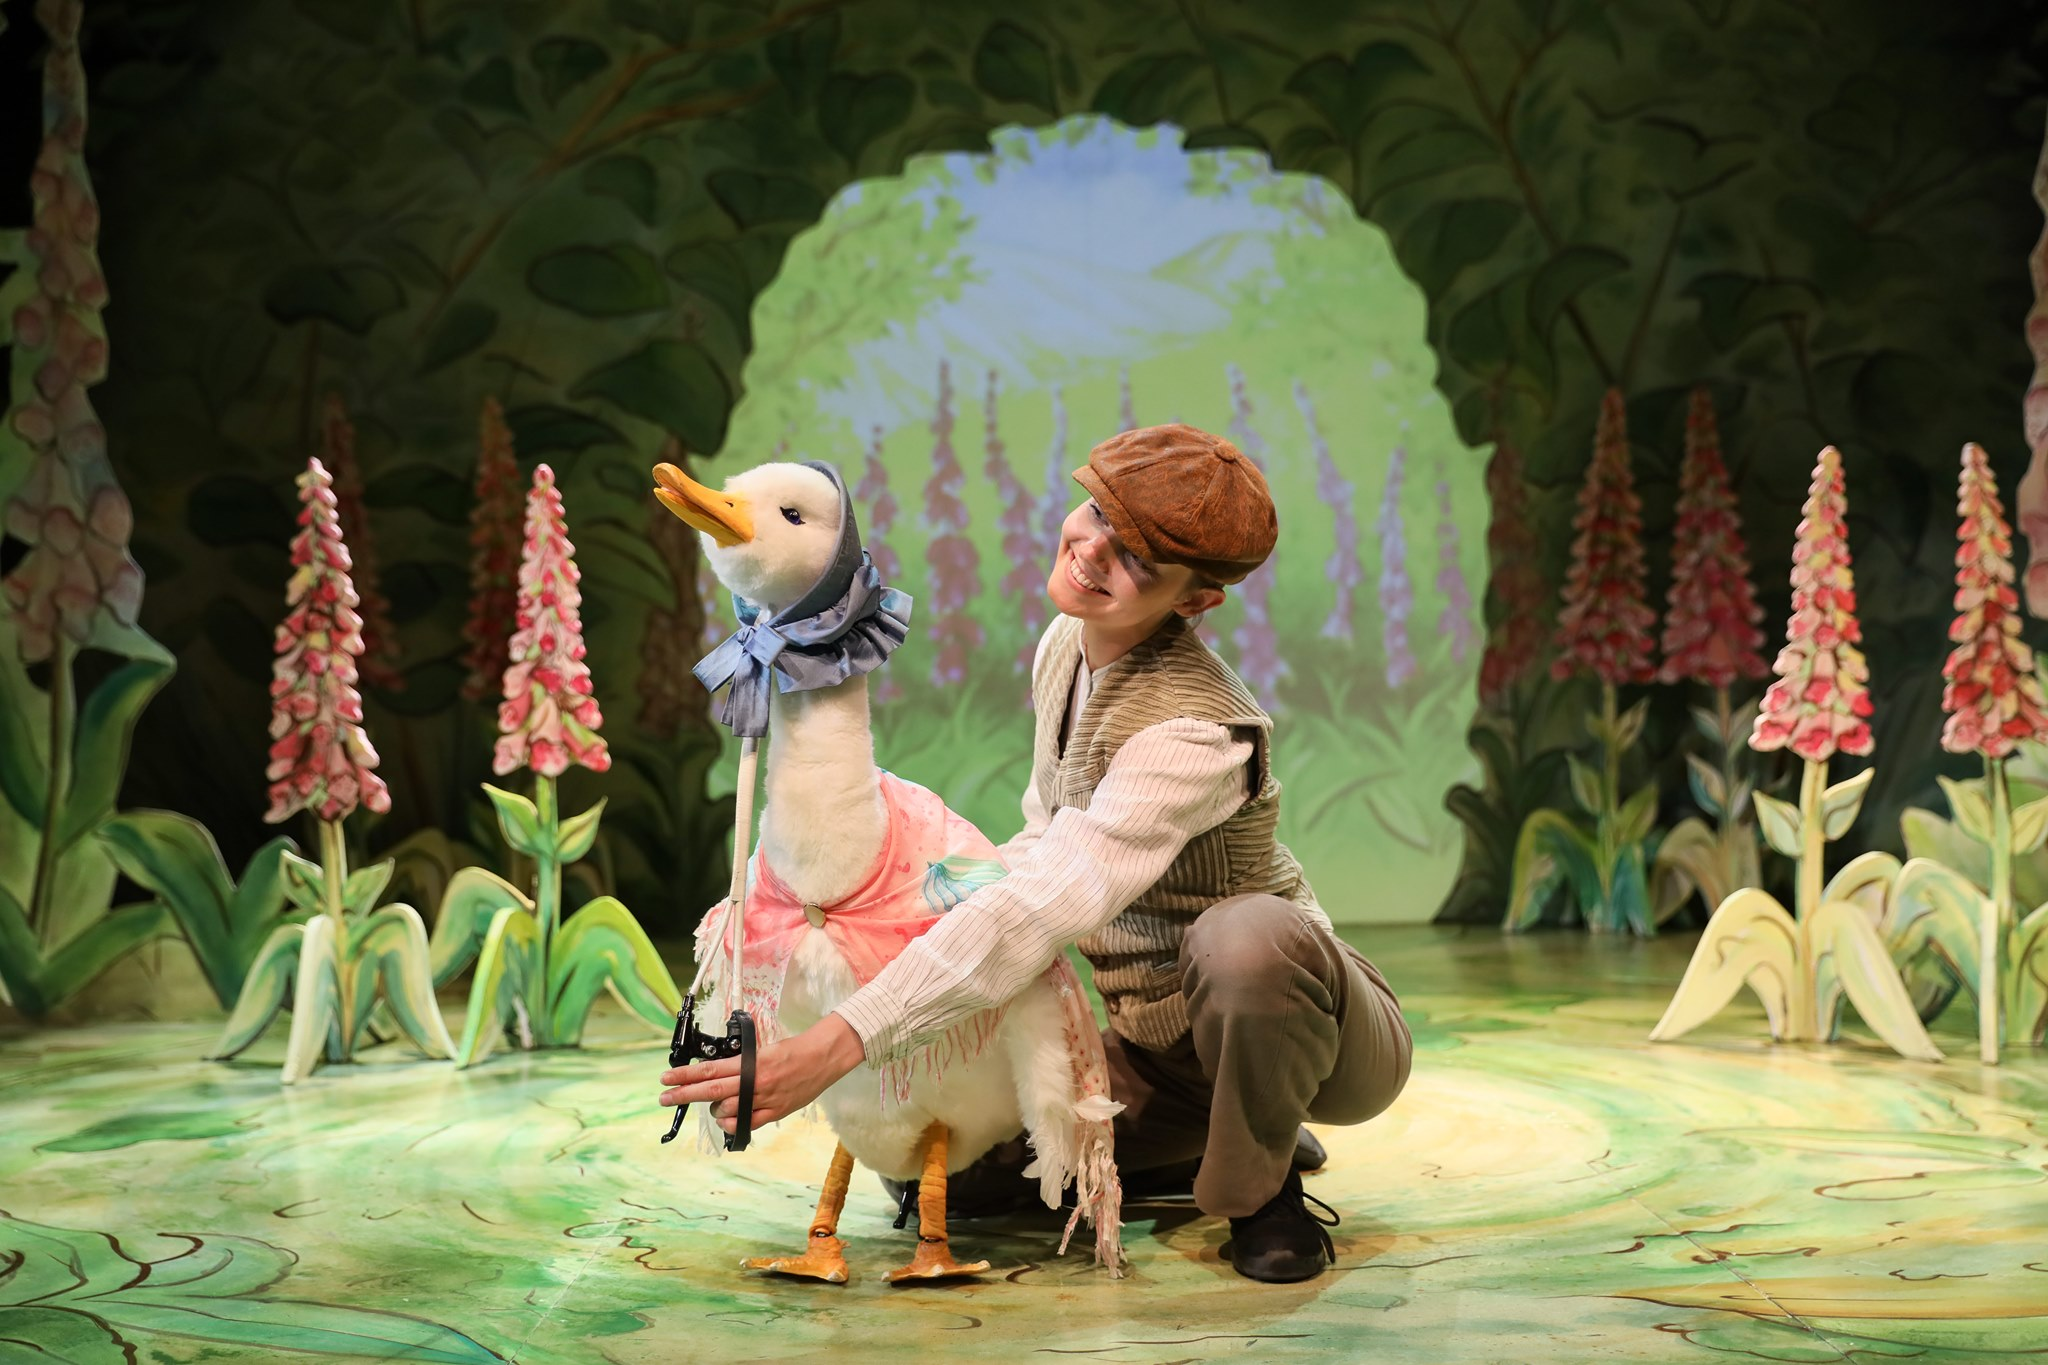 a swan puppet on stage amongst trees